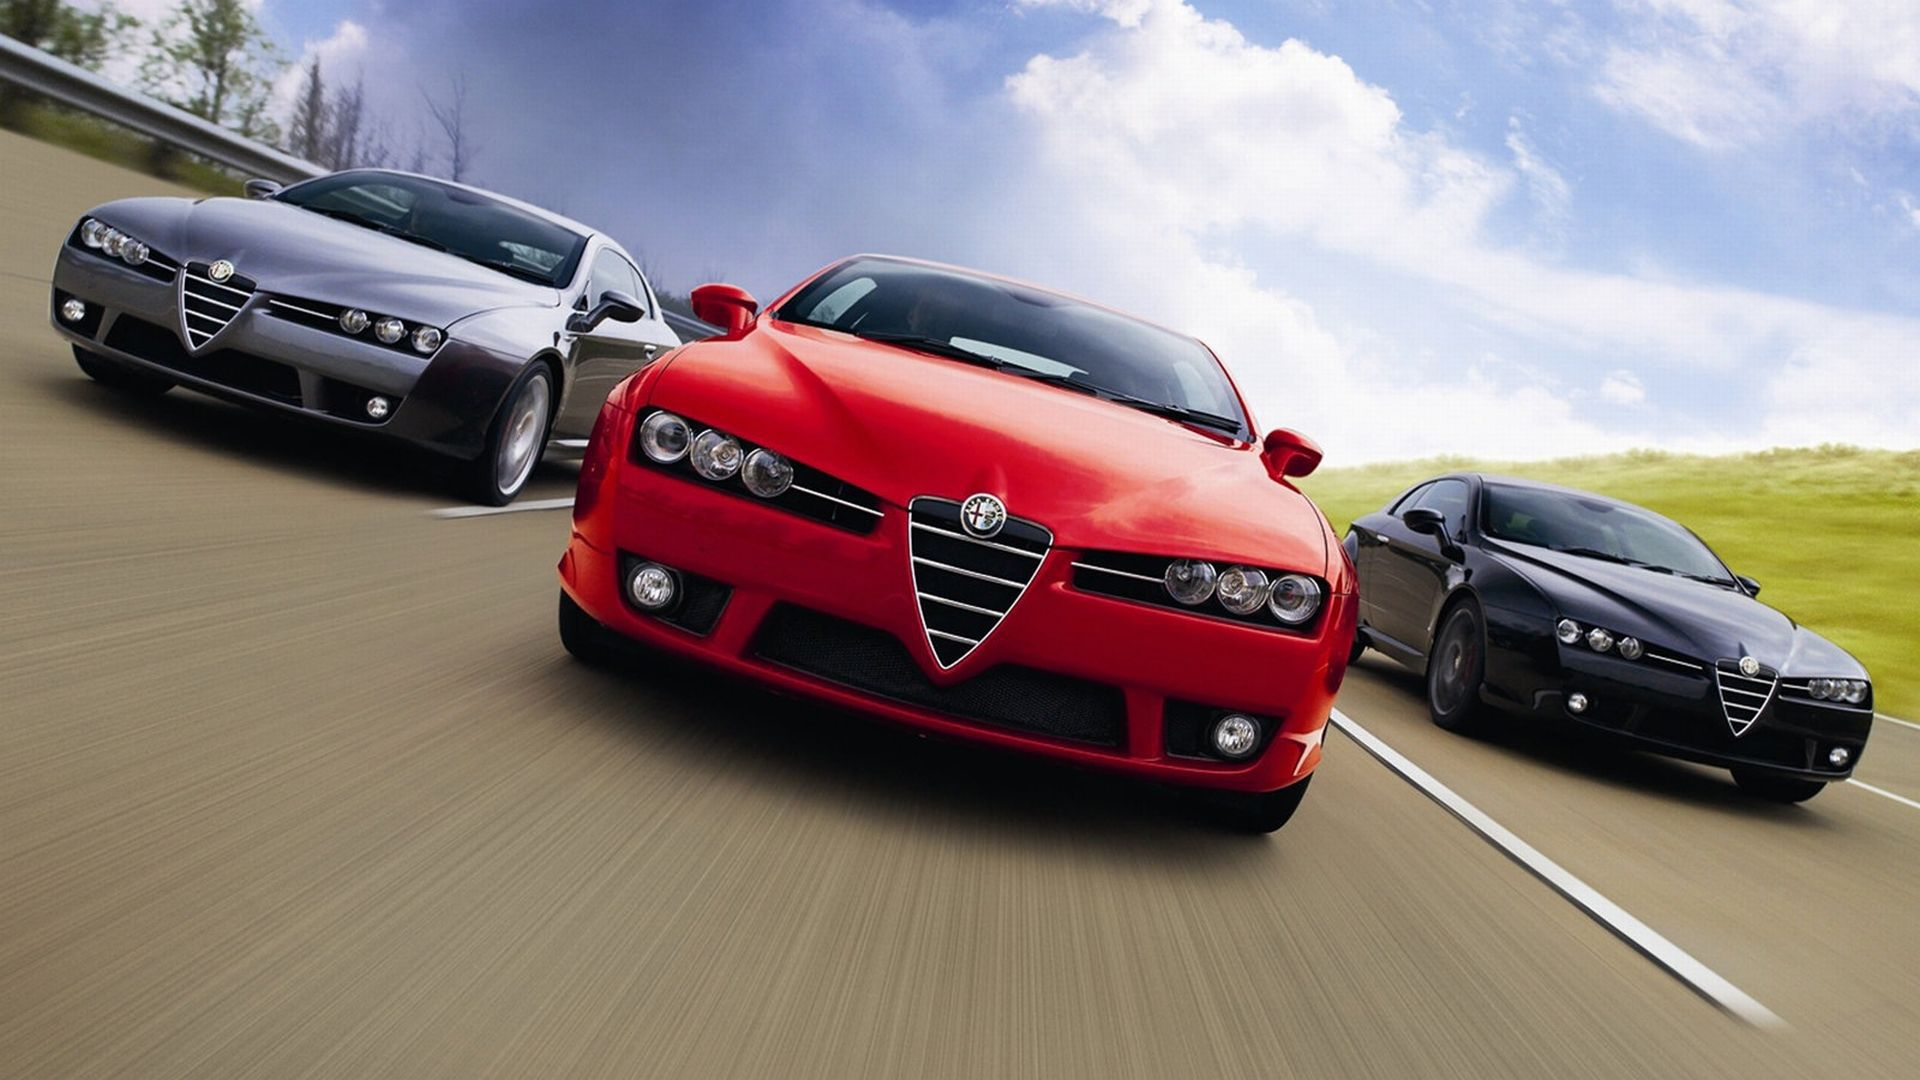 Alfa Romeo Brera Wallpapers HD